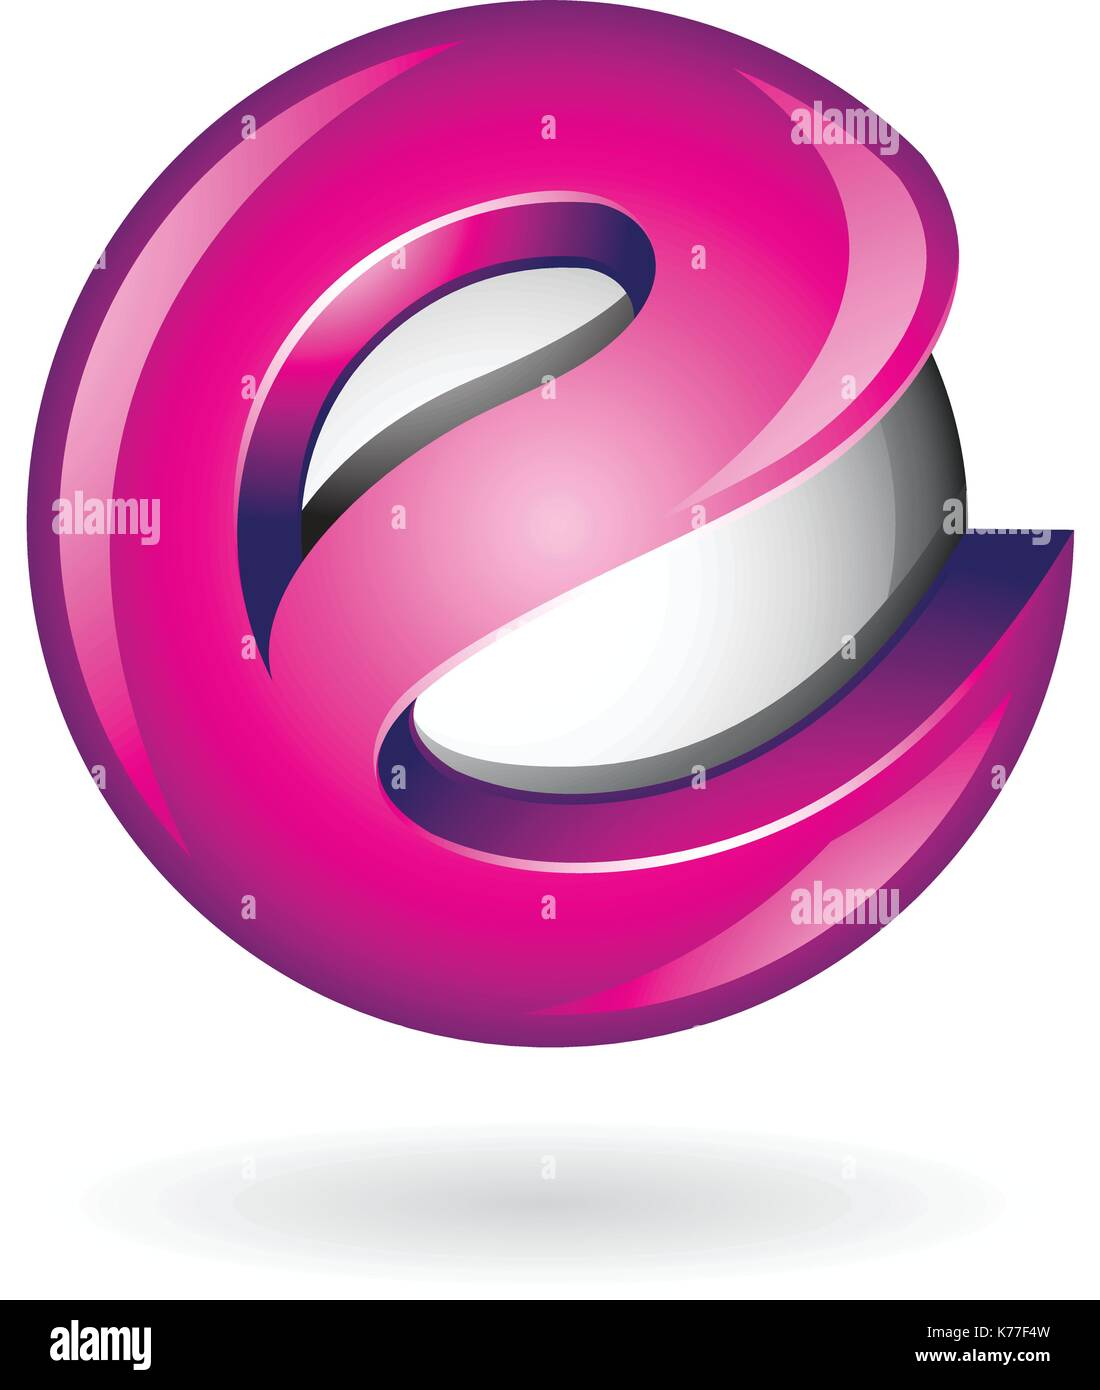 Magenta Color Stock Vector Images - Alamy